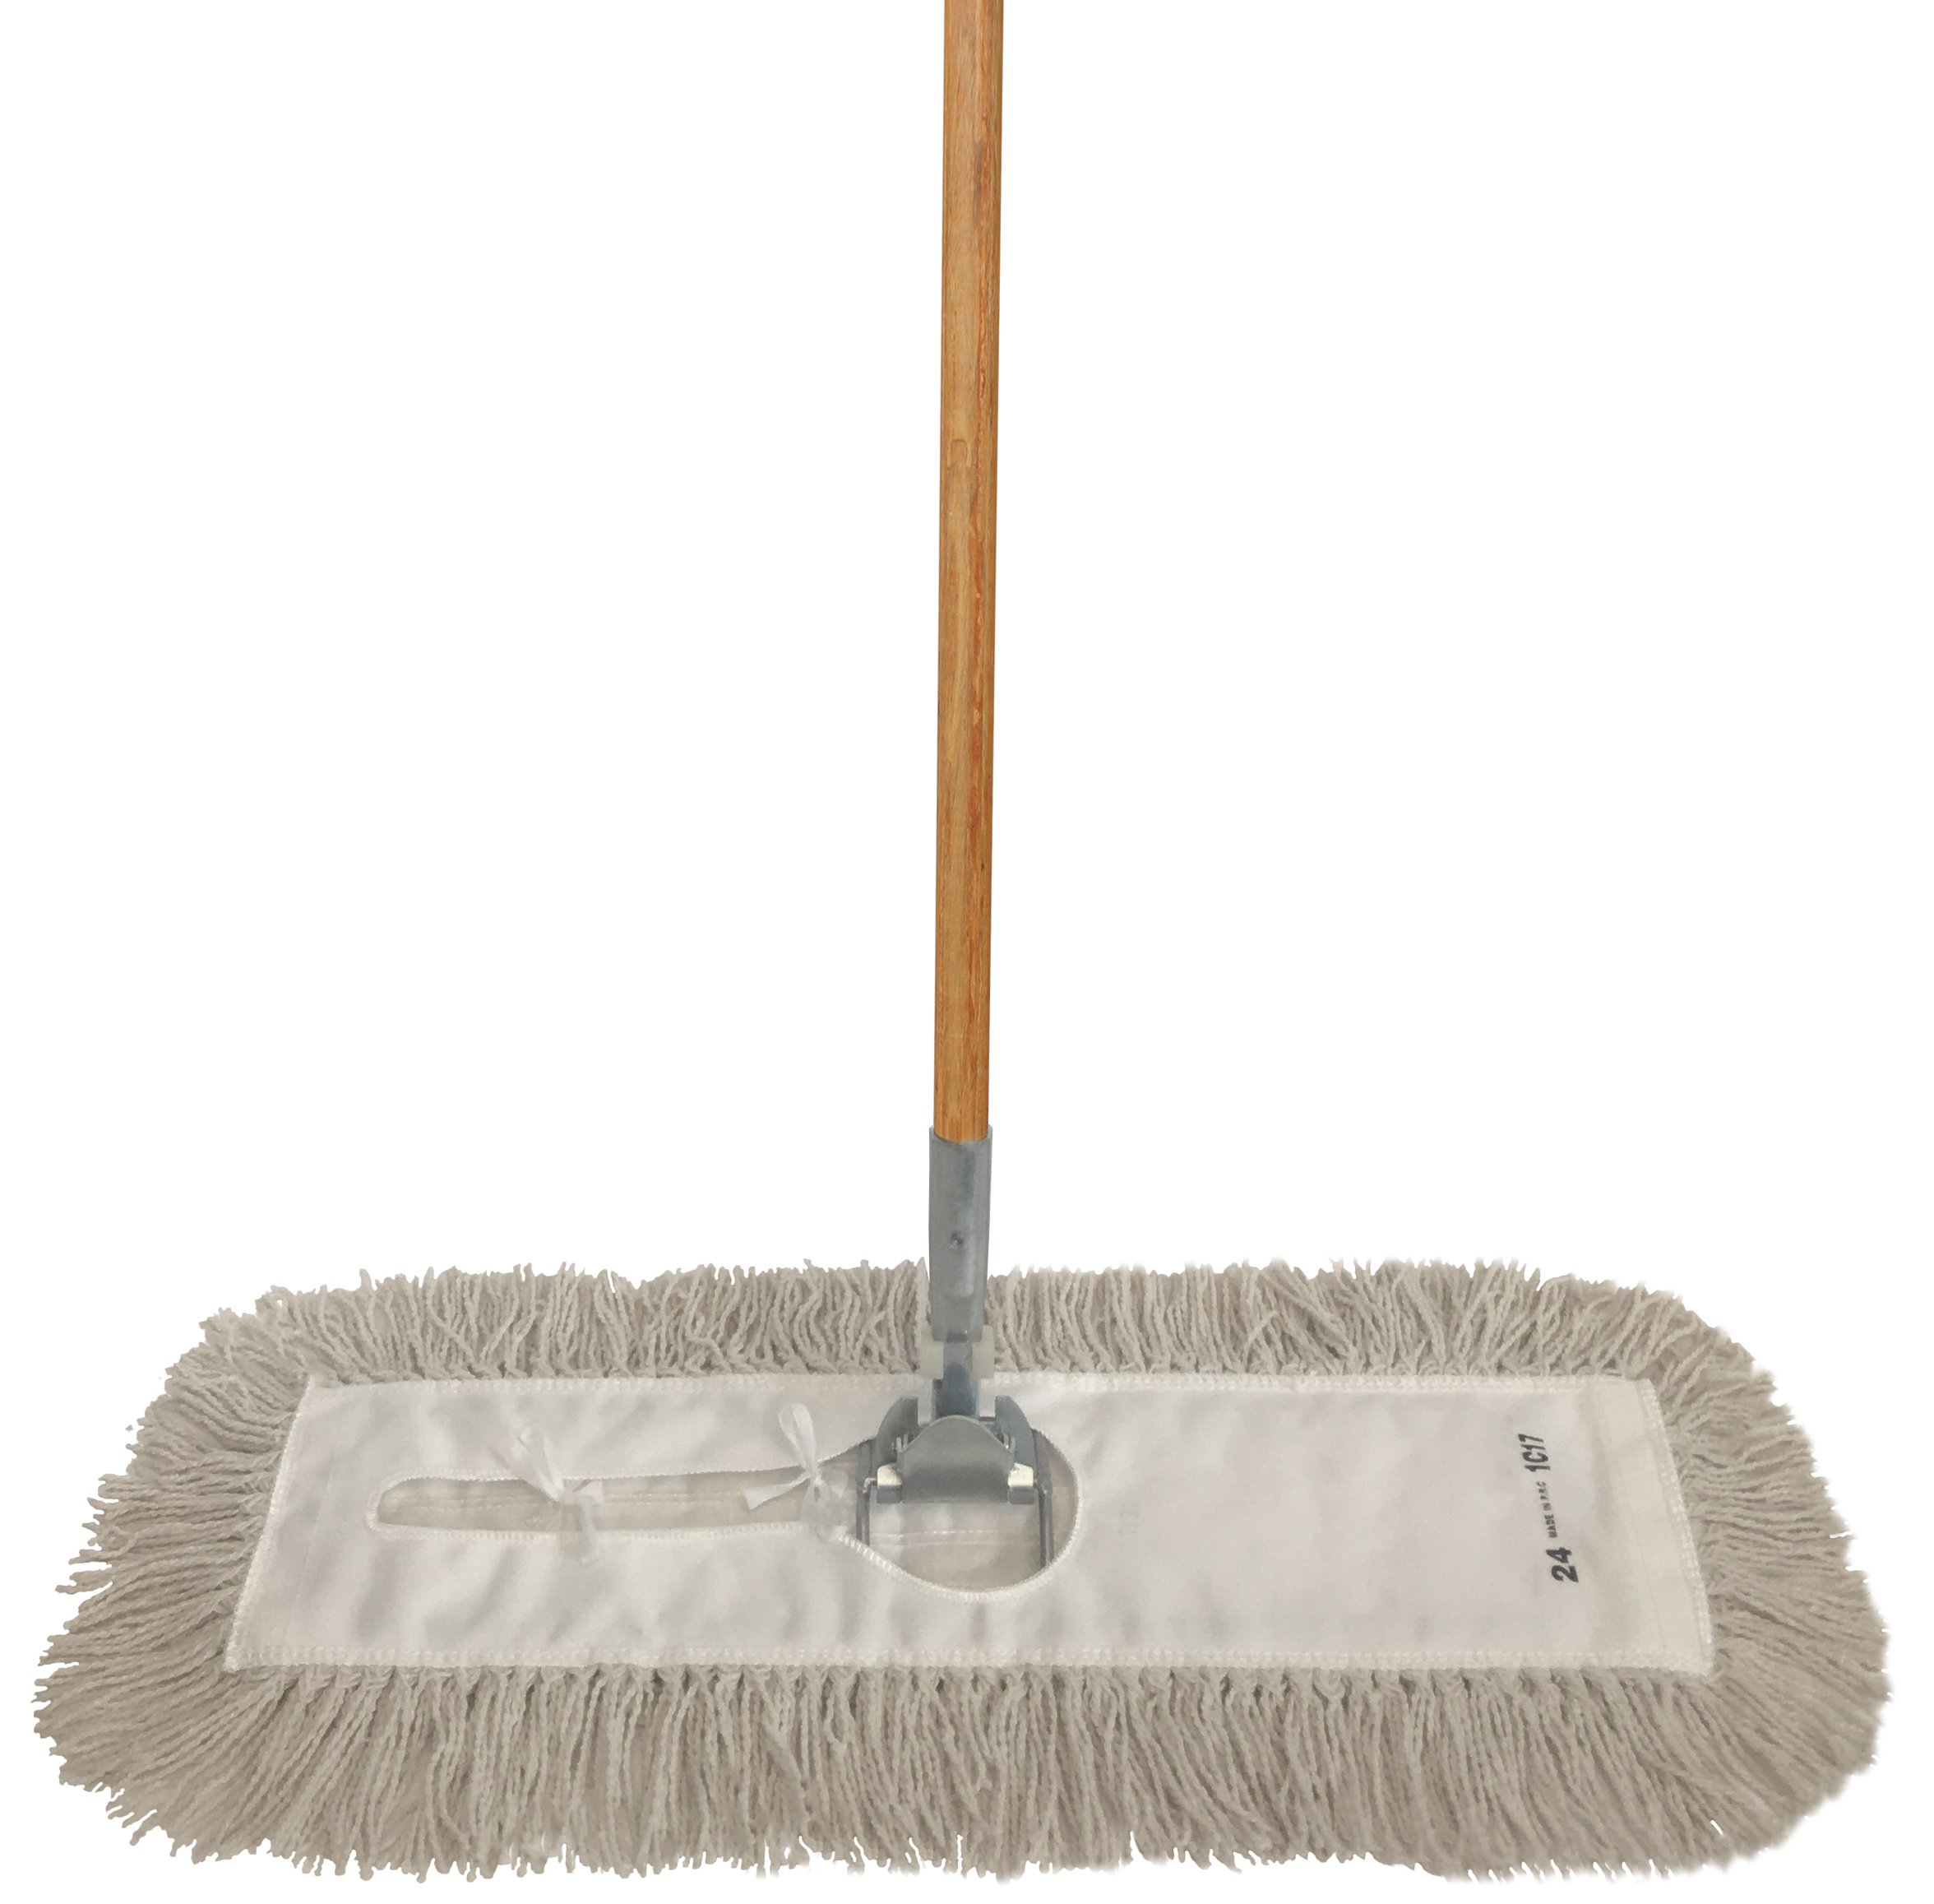 Dust Mop Kit 48'' : (1) 48'' White Industrial Closed-Loop Dust Mop, (1) 48'' Wire Dust Mop Frame & (1) Wood Dust Mop Handle Clip-On Style